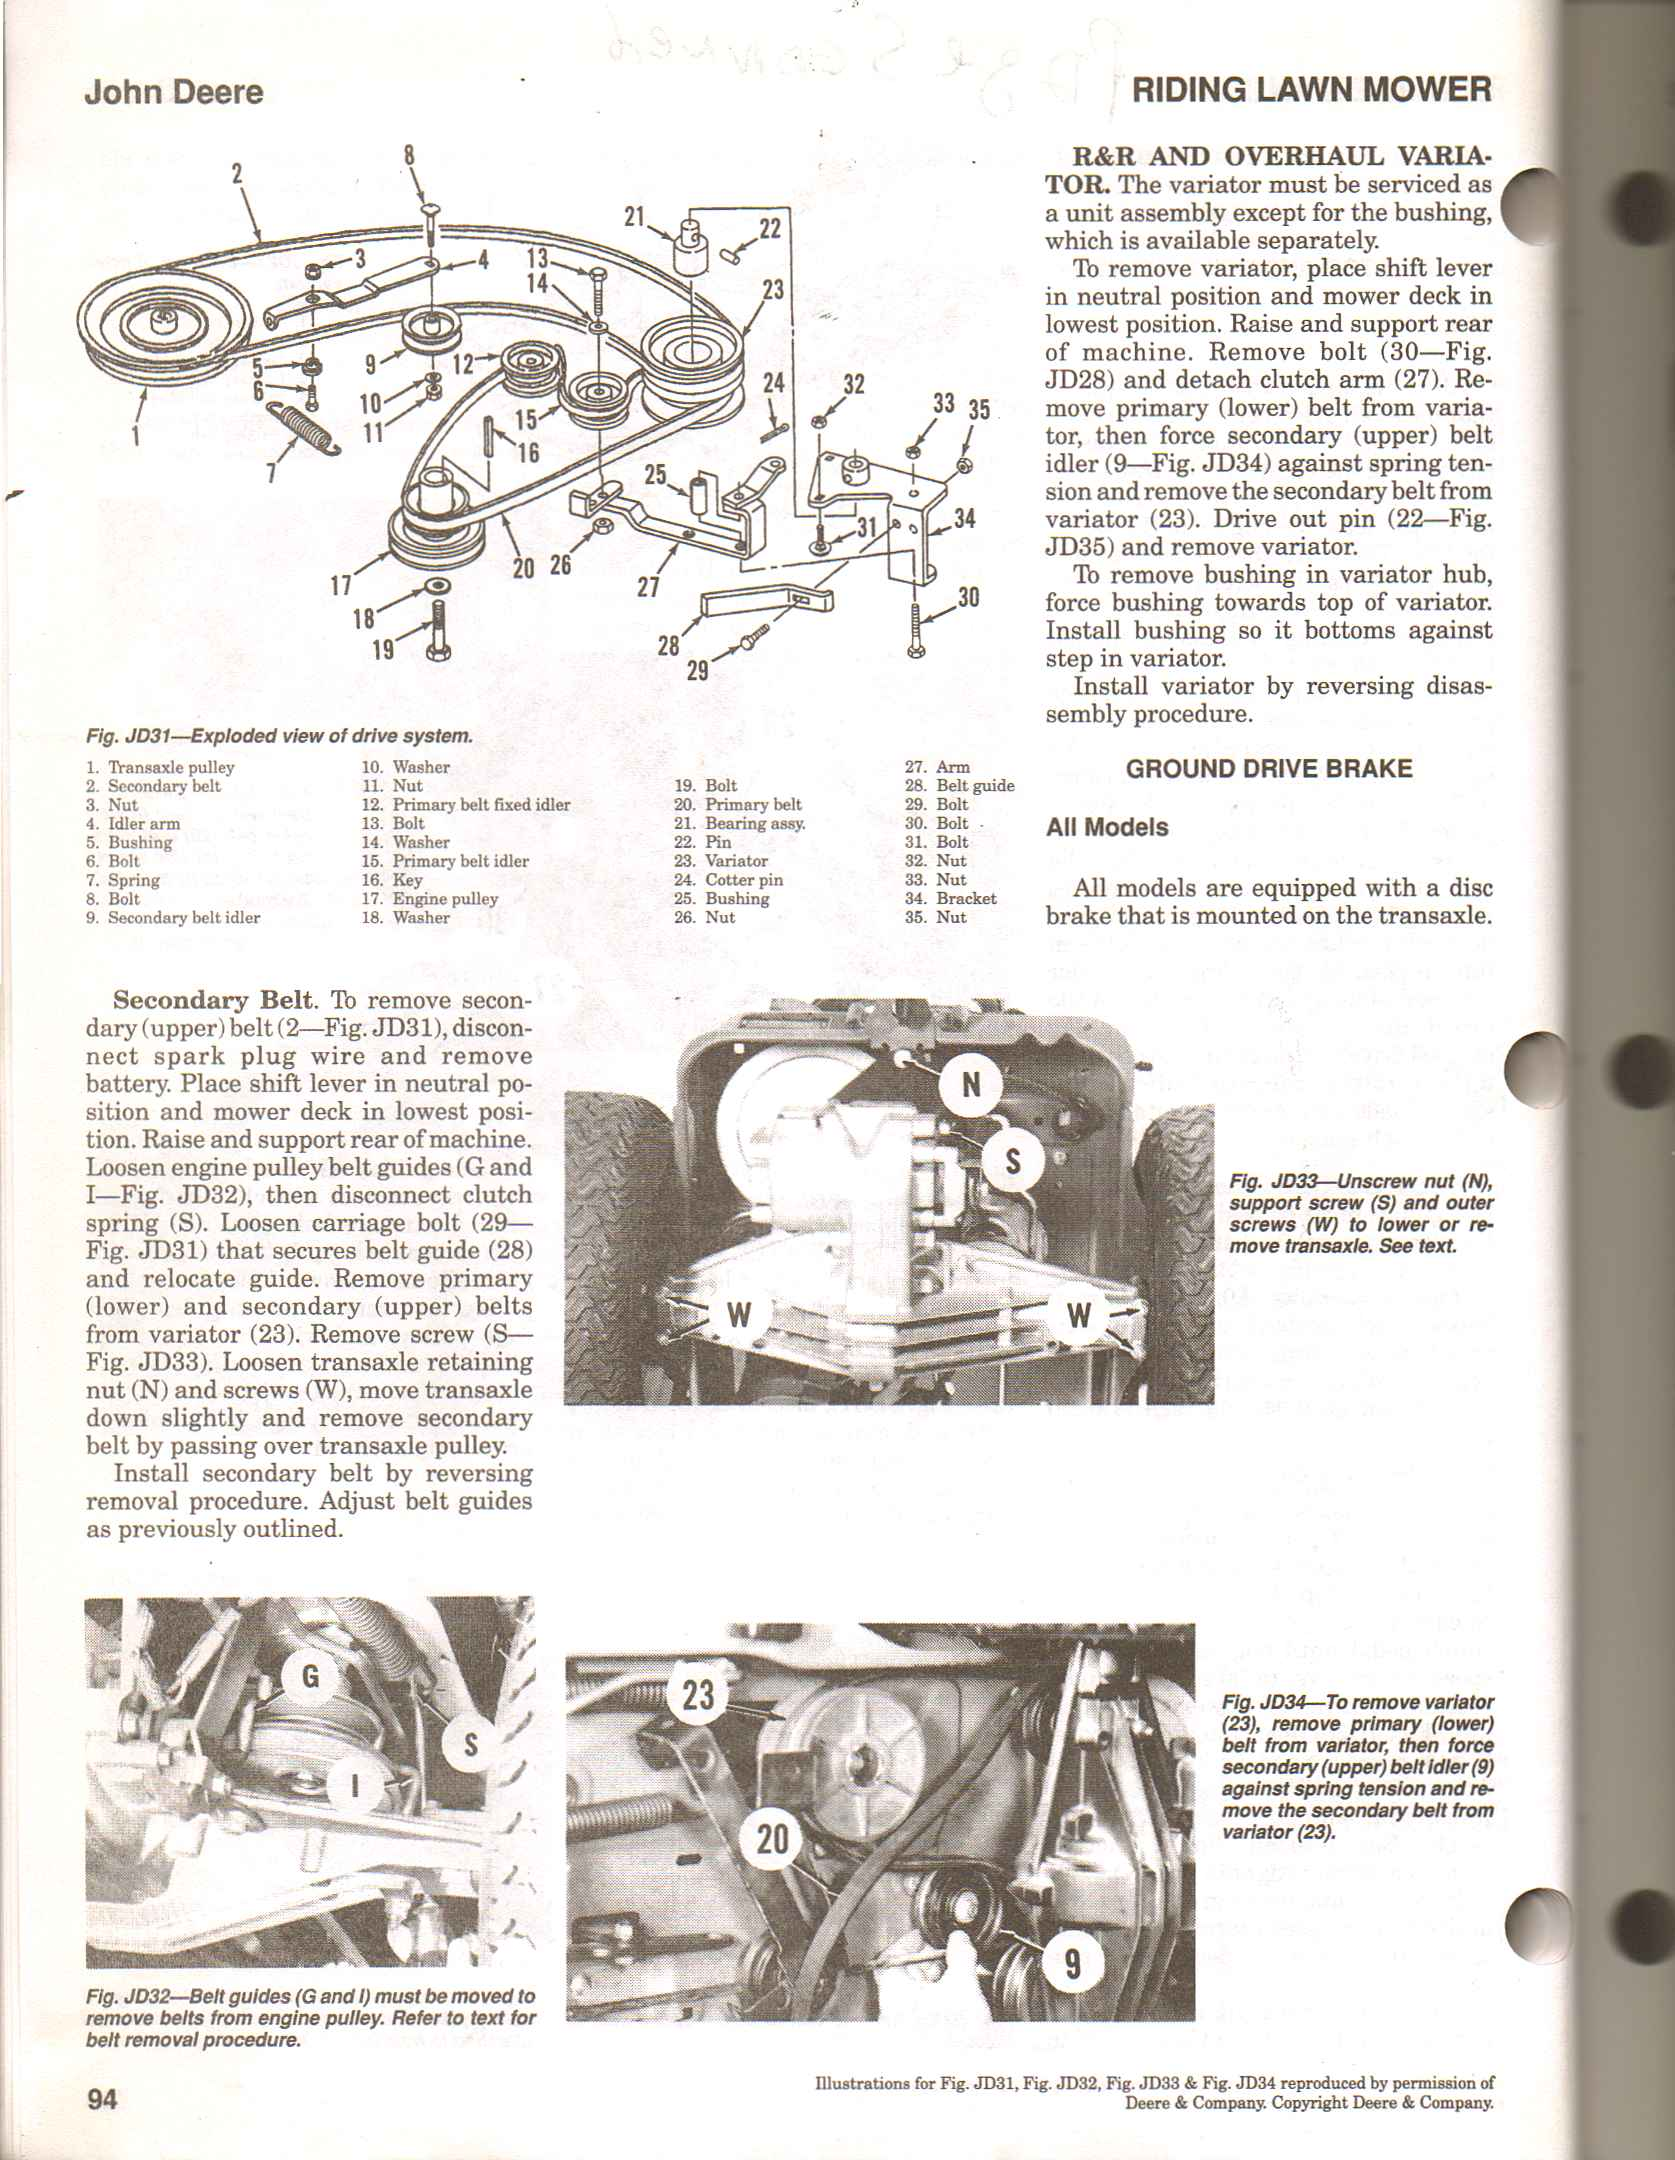 rx73 wiring diagram wiring diagram John Deere RX95 Mower Parts rx95 wiring diagram best wiring library2014 06 02_150821_deere_rx_series_drive i have a jd rx95 speed control has